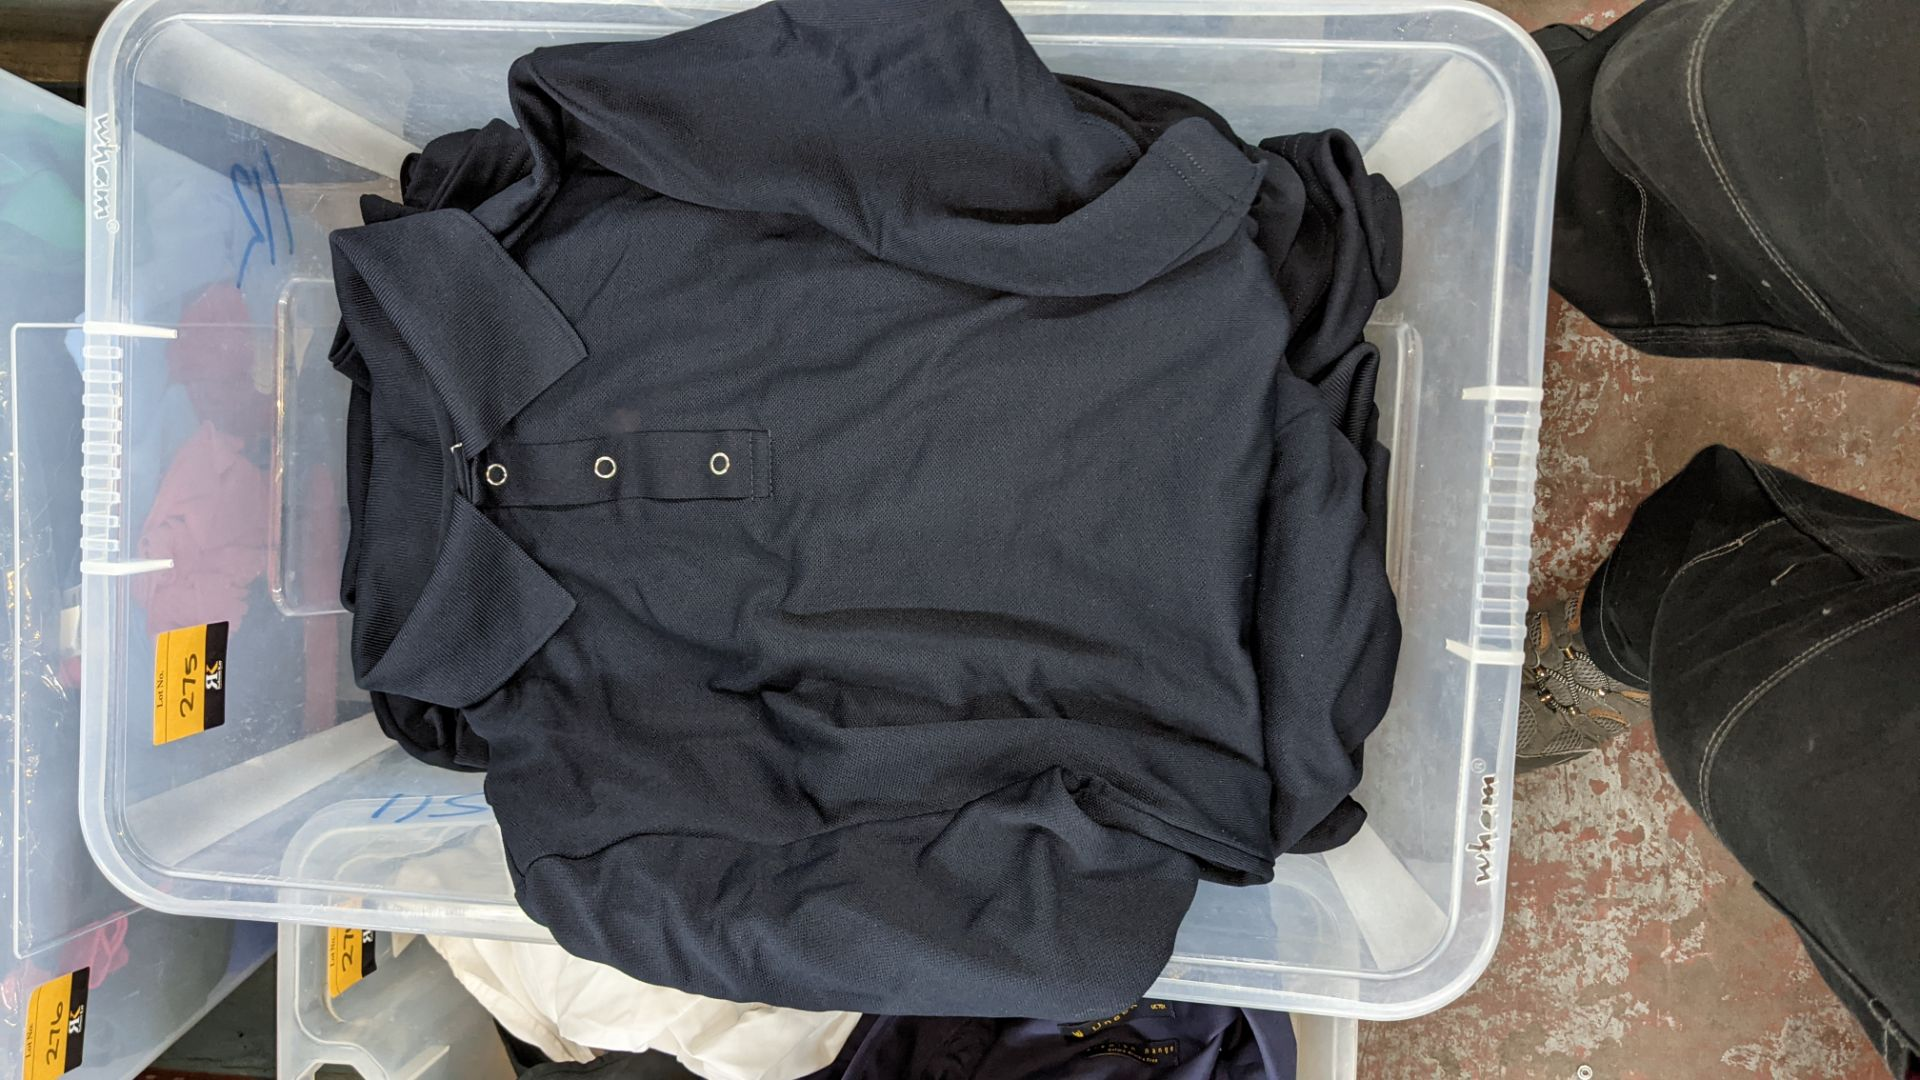 Approx 40 off blue polo shirts - the contents of 1 large crate. NB crate excluded - Image 4 of 4